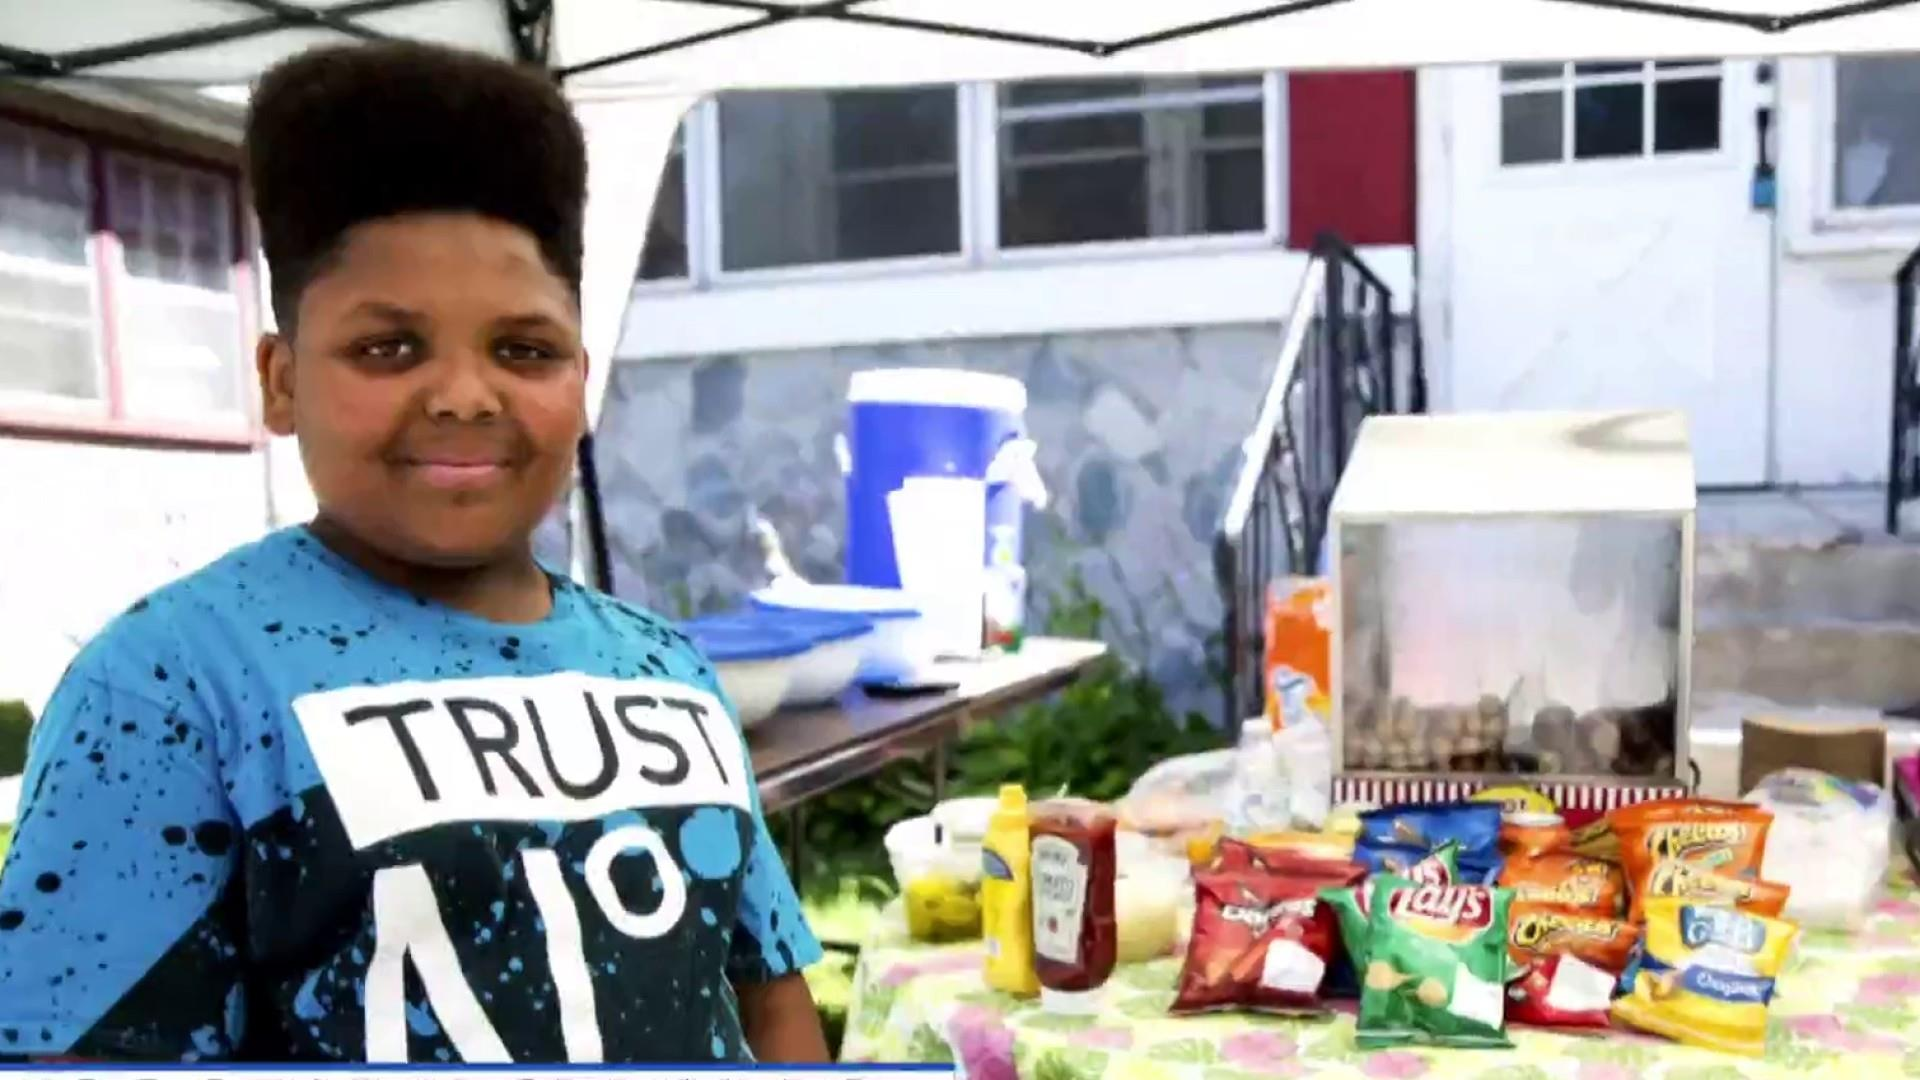 13-year-old's hot dog stand open after attempt to shut him down